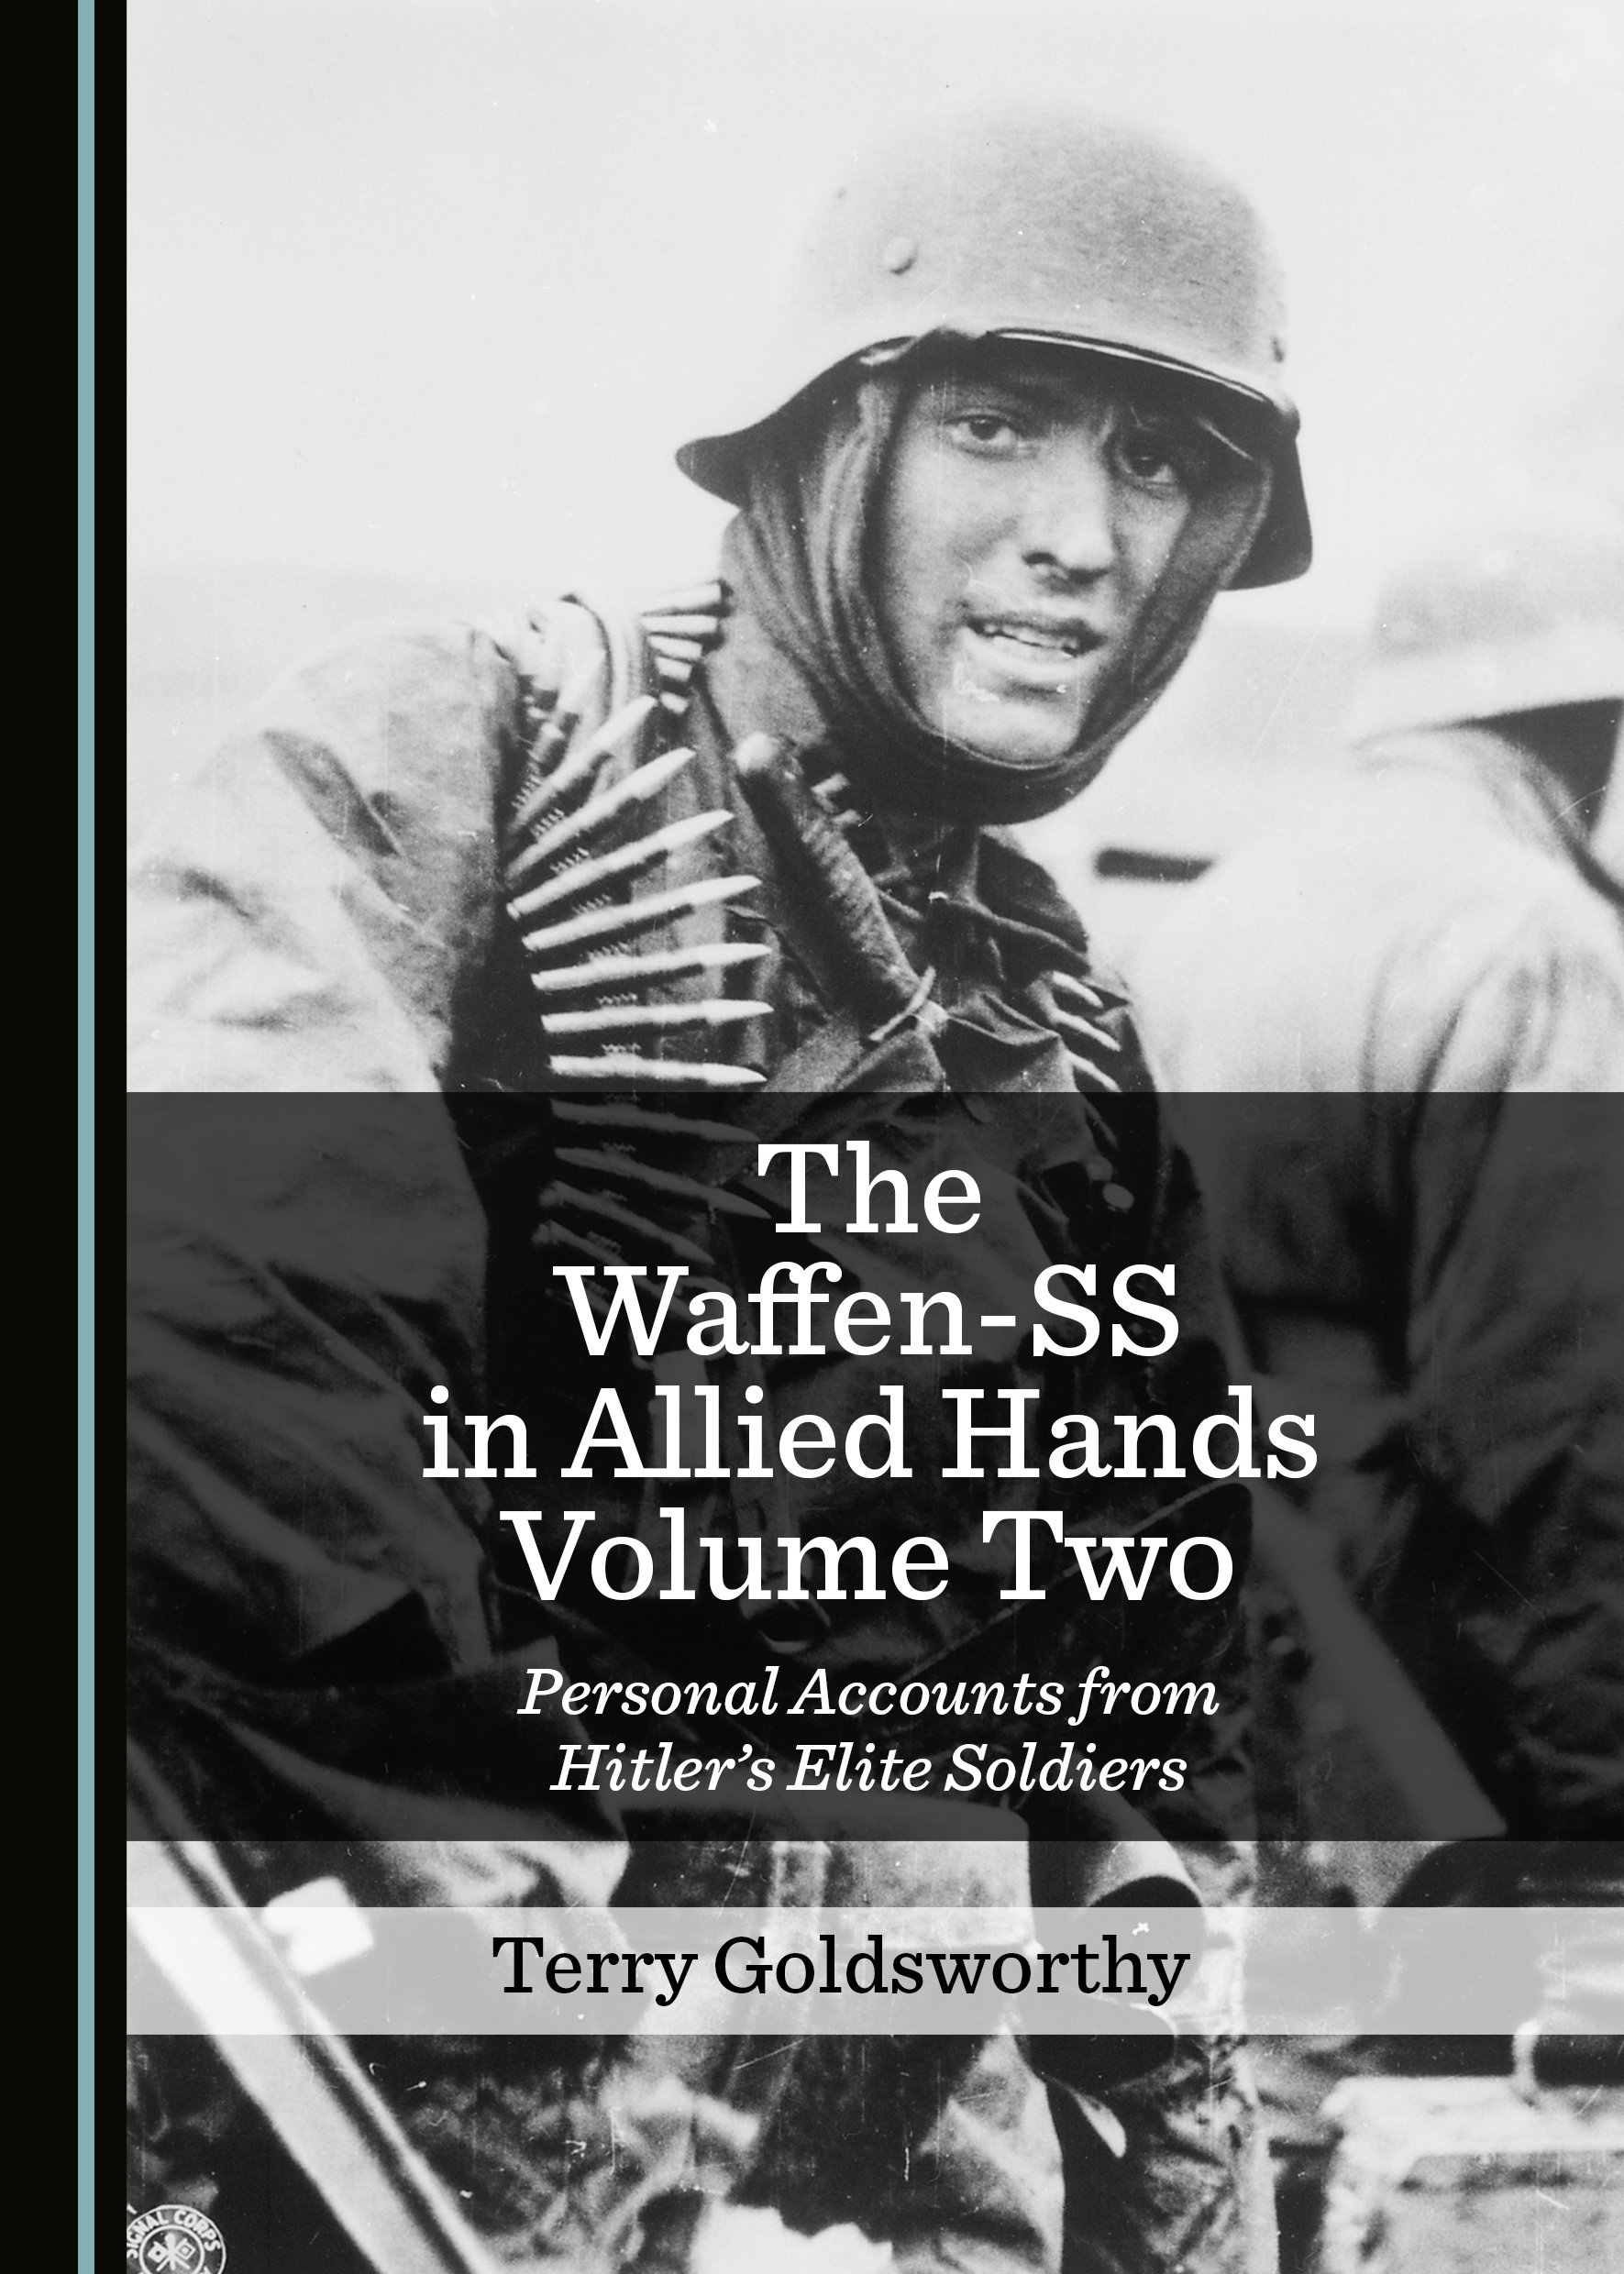 The Waffen-SS in Allied Hands Volume Two: Personal Accounts from Hitler's Elite Soldiers